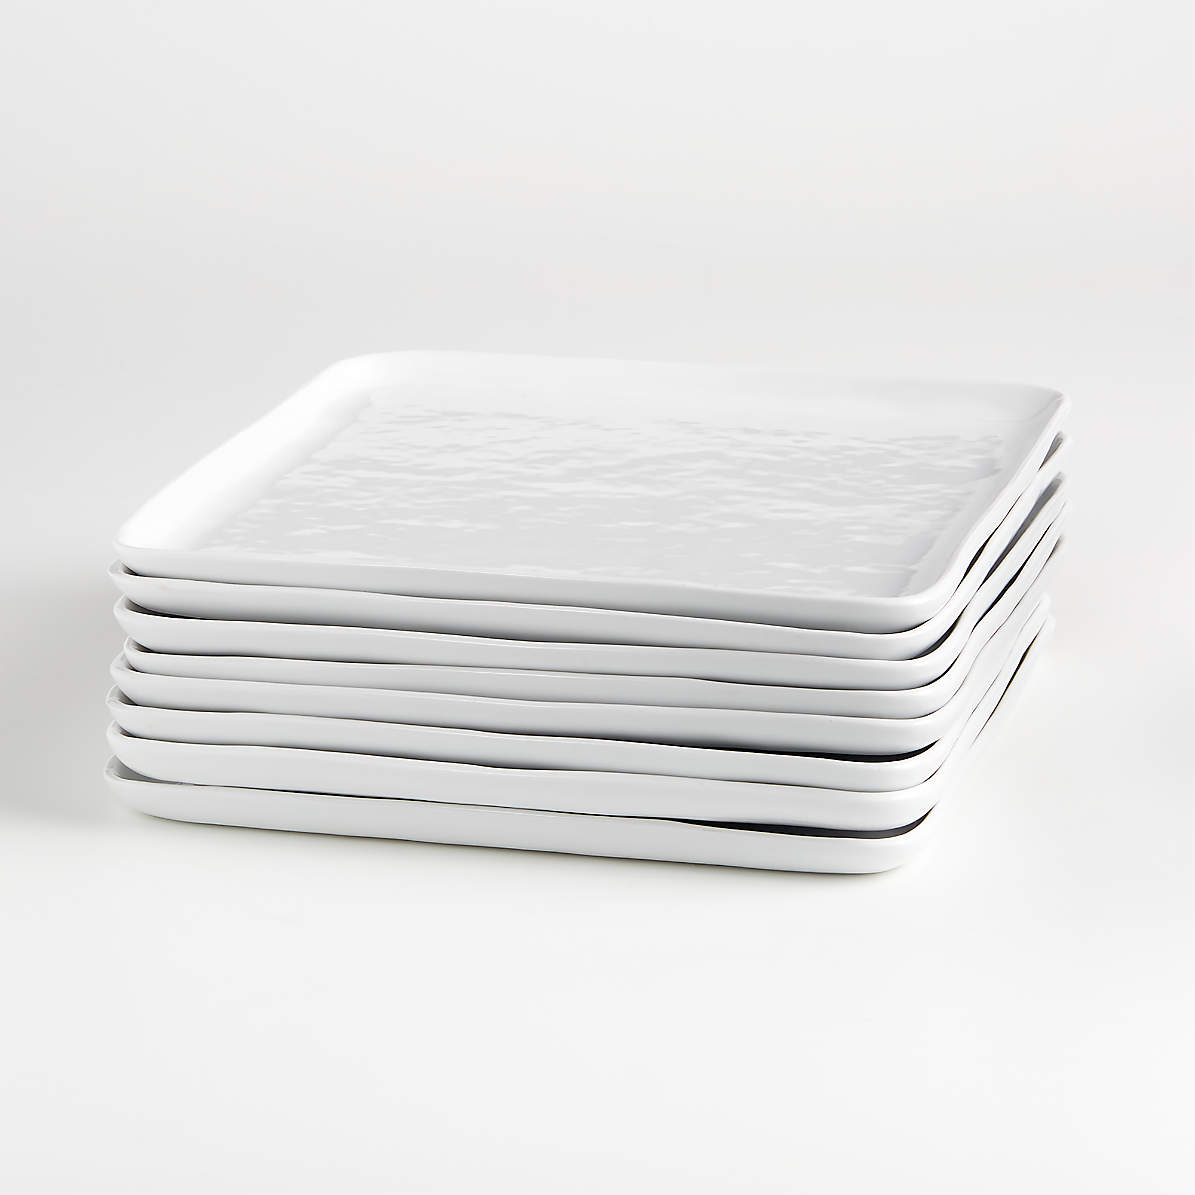 Set Of 8 Mercer Square Dinner Plates Reviews Crate And Barrel